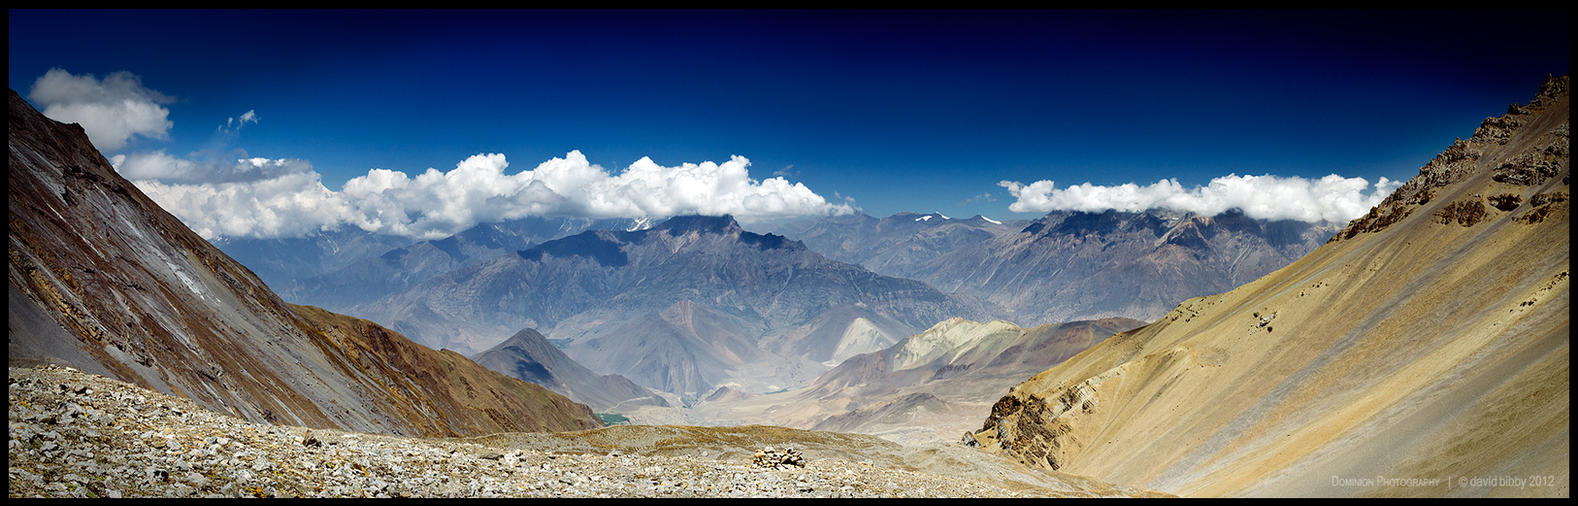 Descending from Thorung La by Dominion-Photography